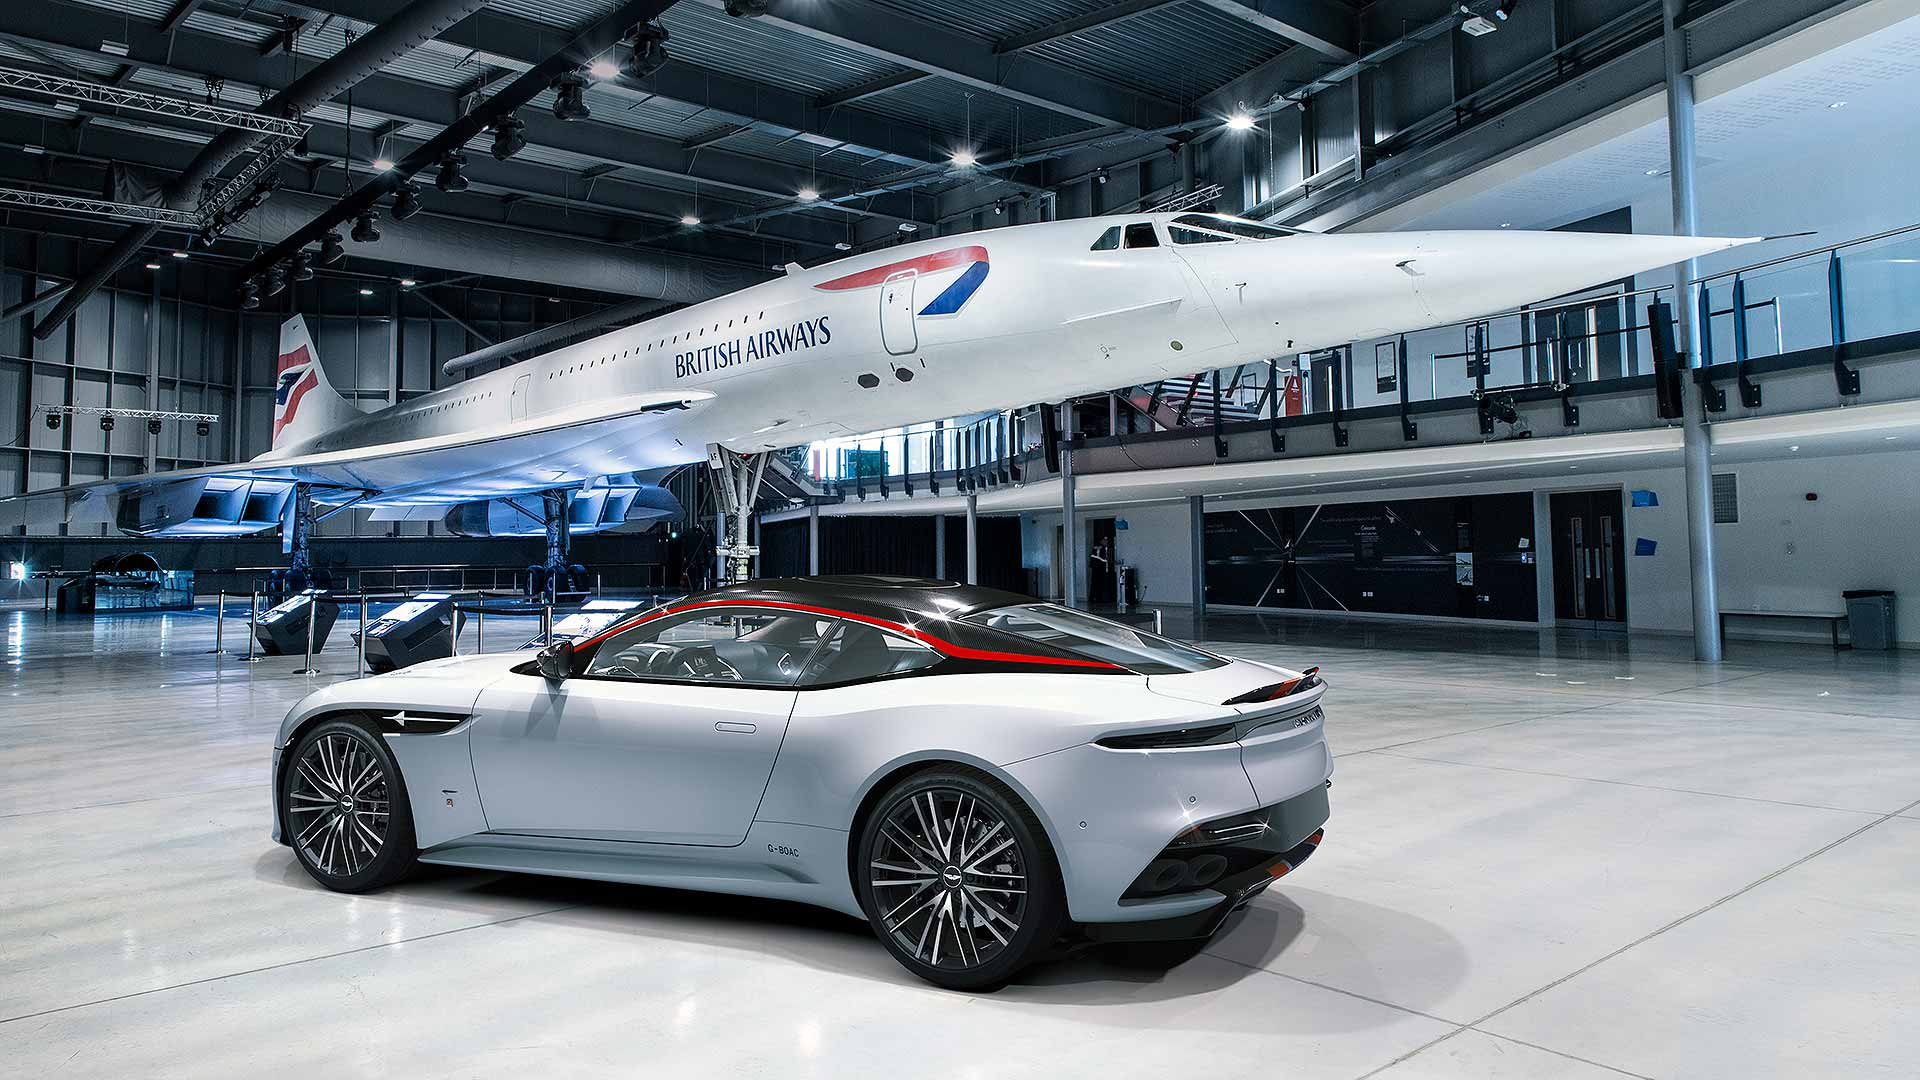 Aston DBS special marks 50 years of Concorde